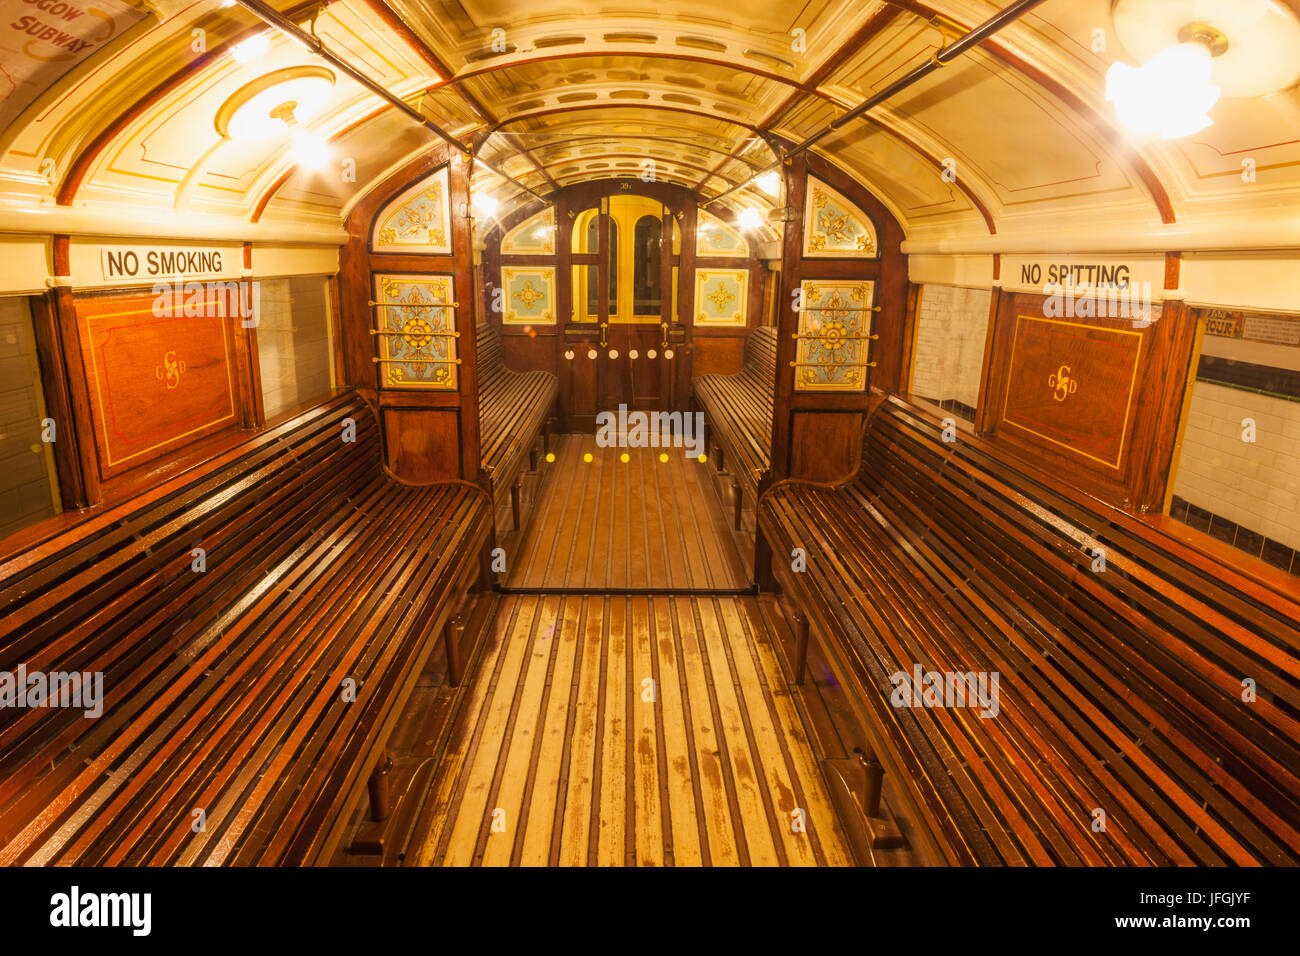 Scotland, Glasgow, Riverside Museum, Interior View of Historical Subway Carriage - Stock Image